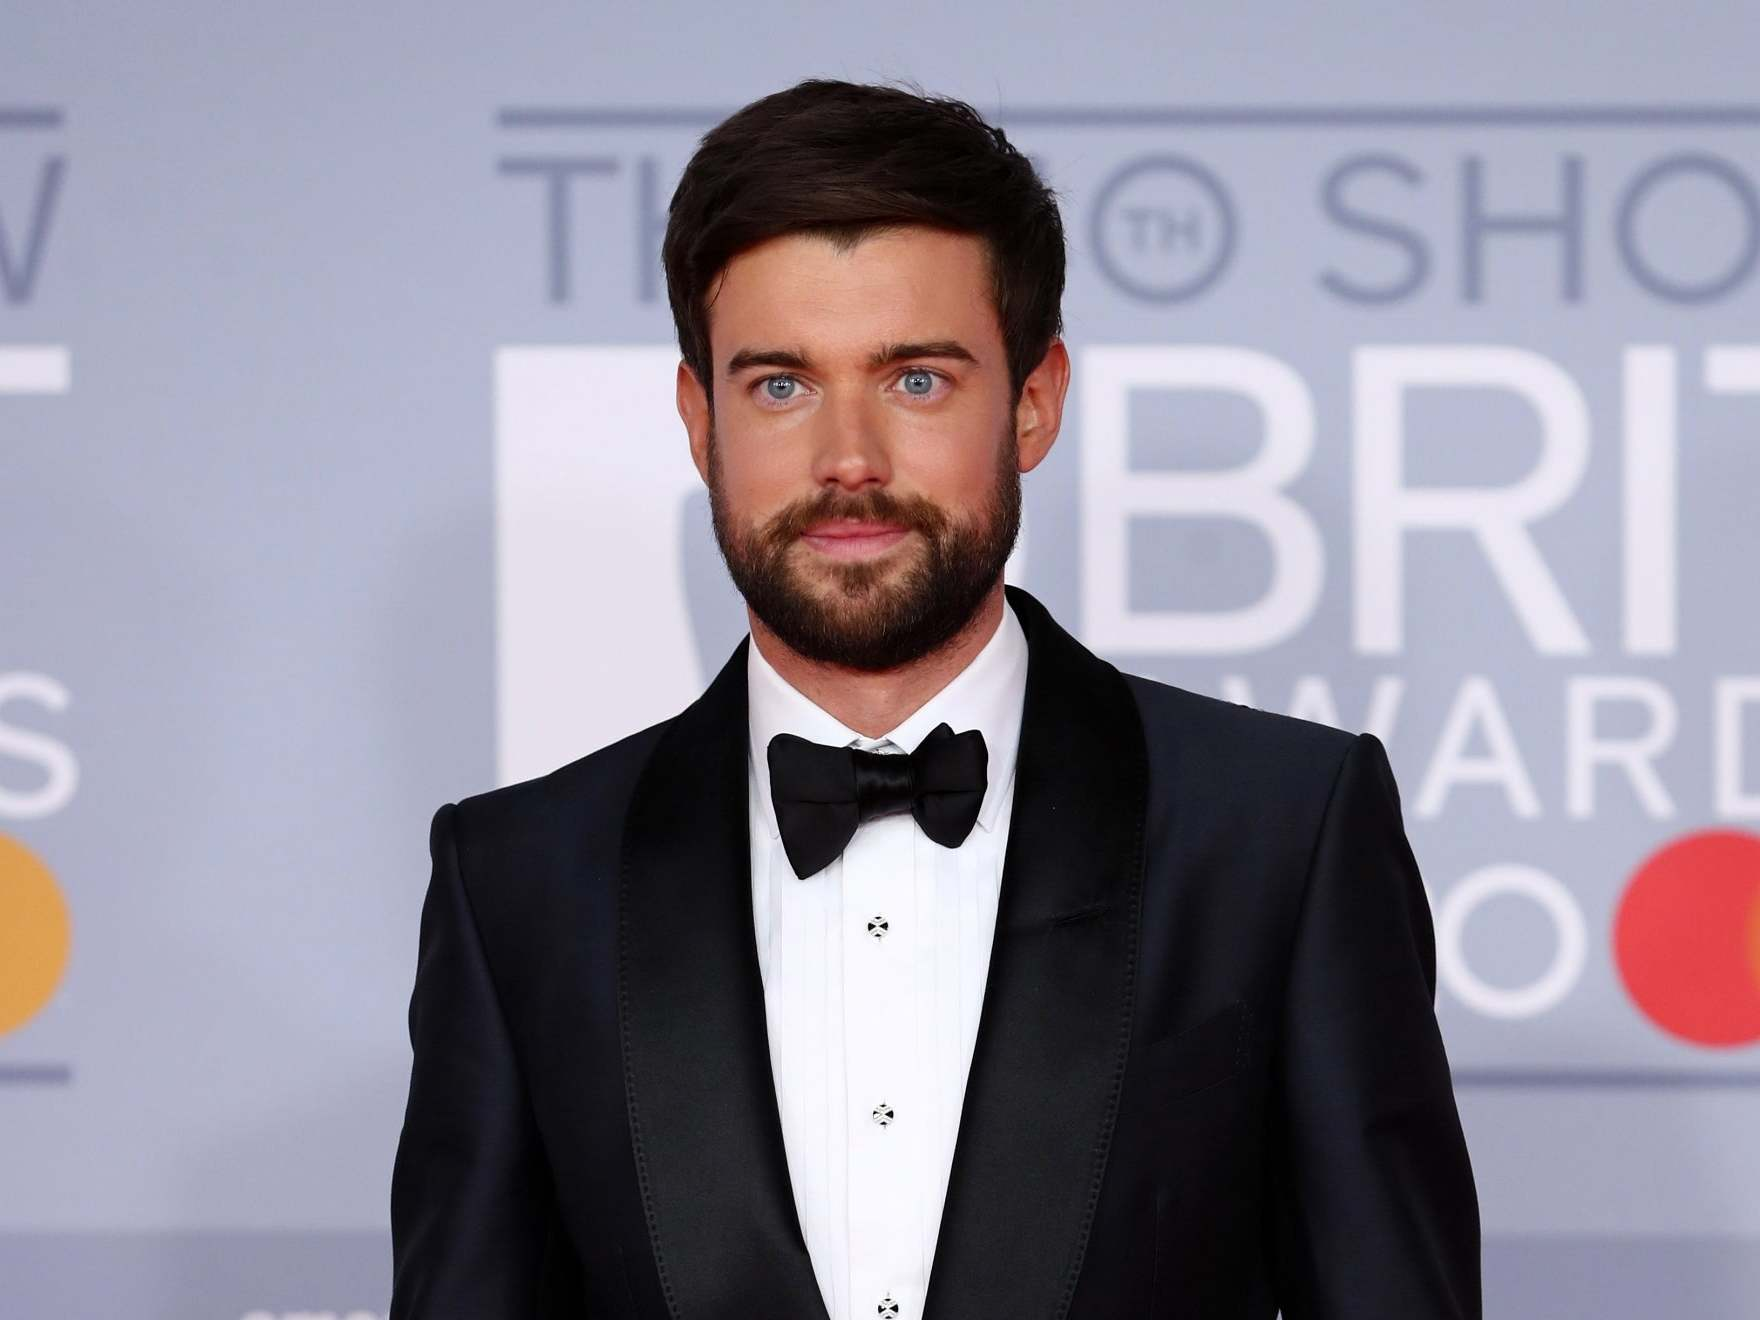 Help The Hungry: Jack Whitehall backs our campaign with photography competition to raise money for the vulnerable thumbnail